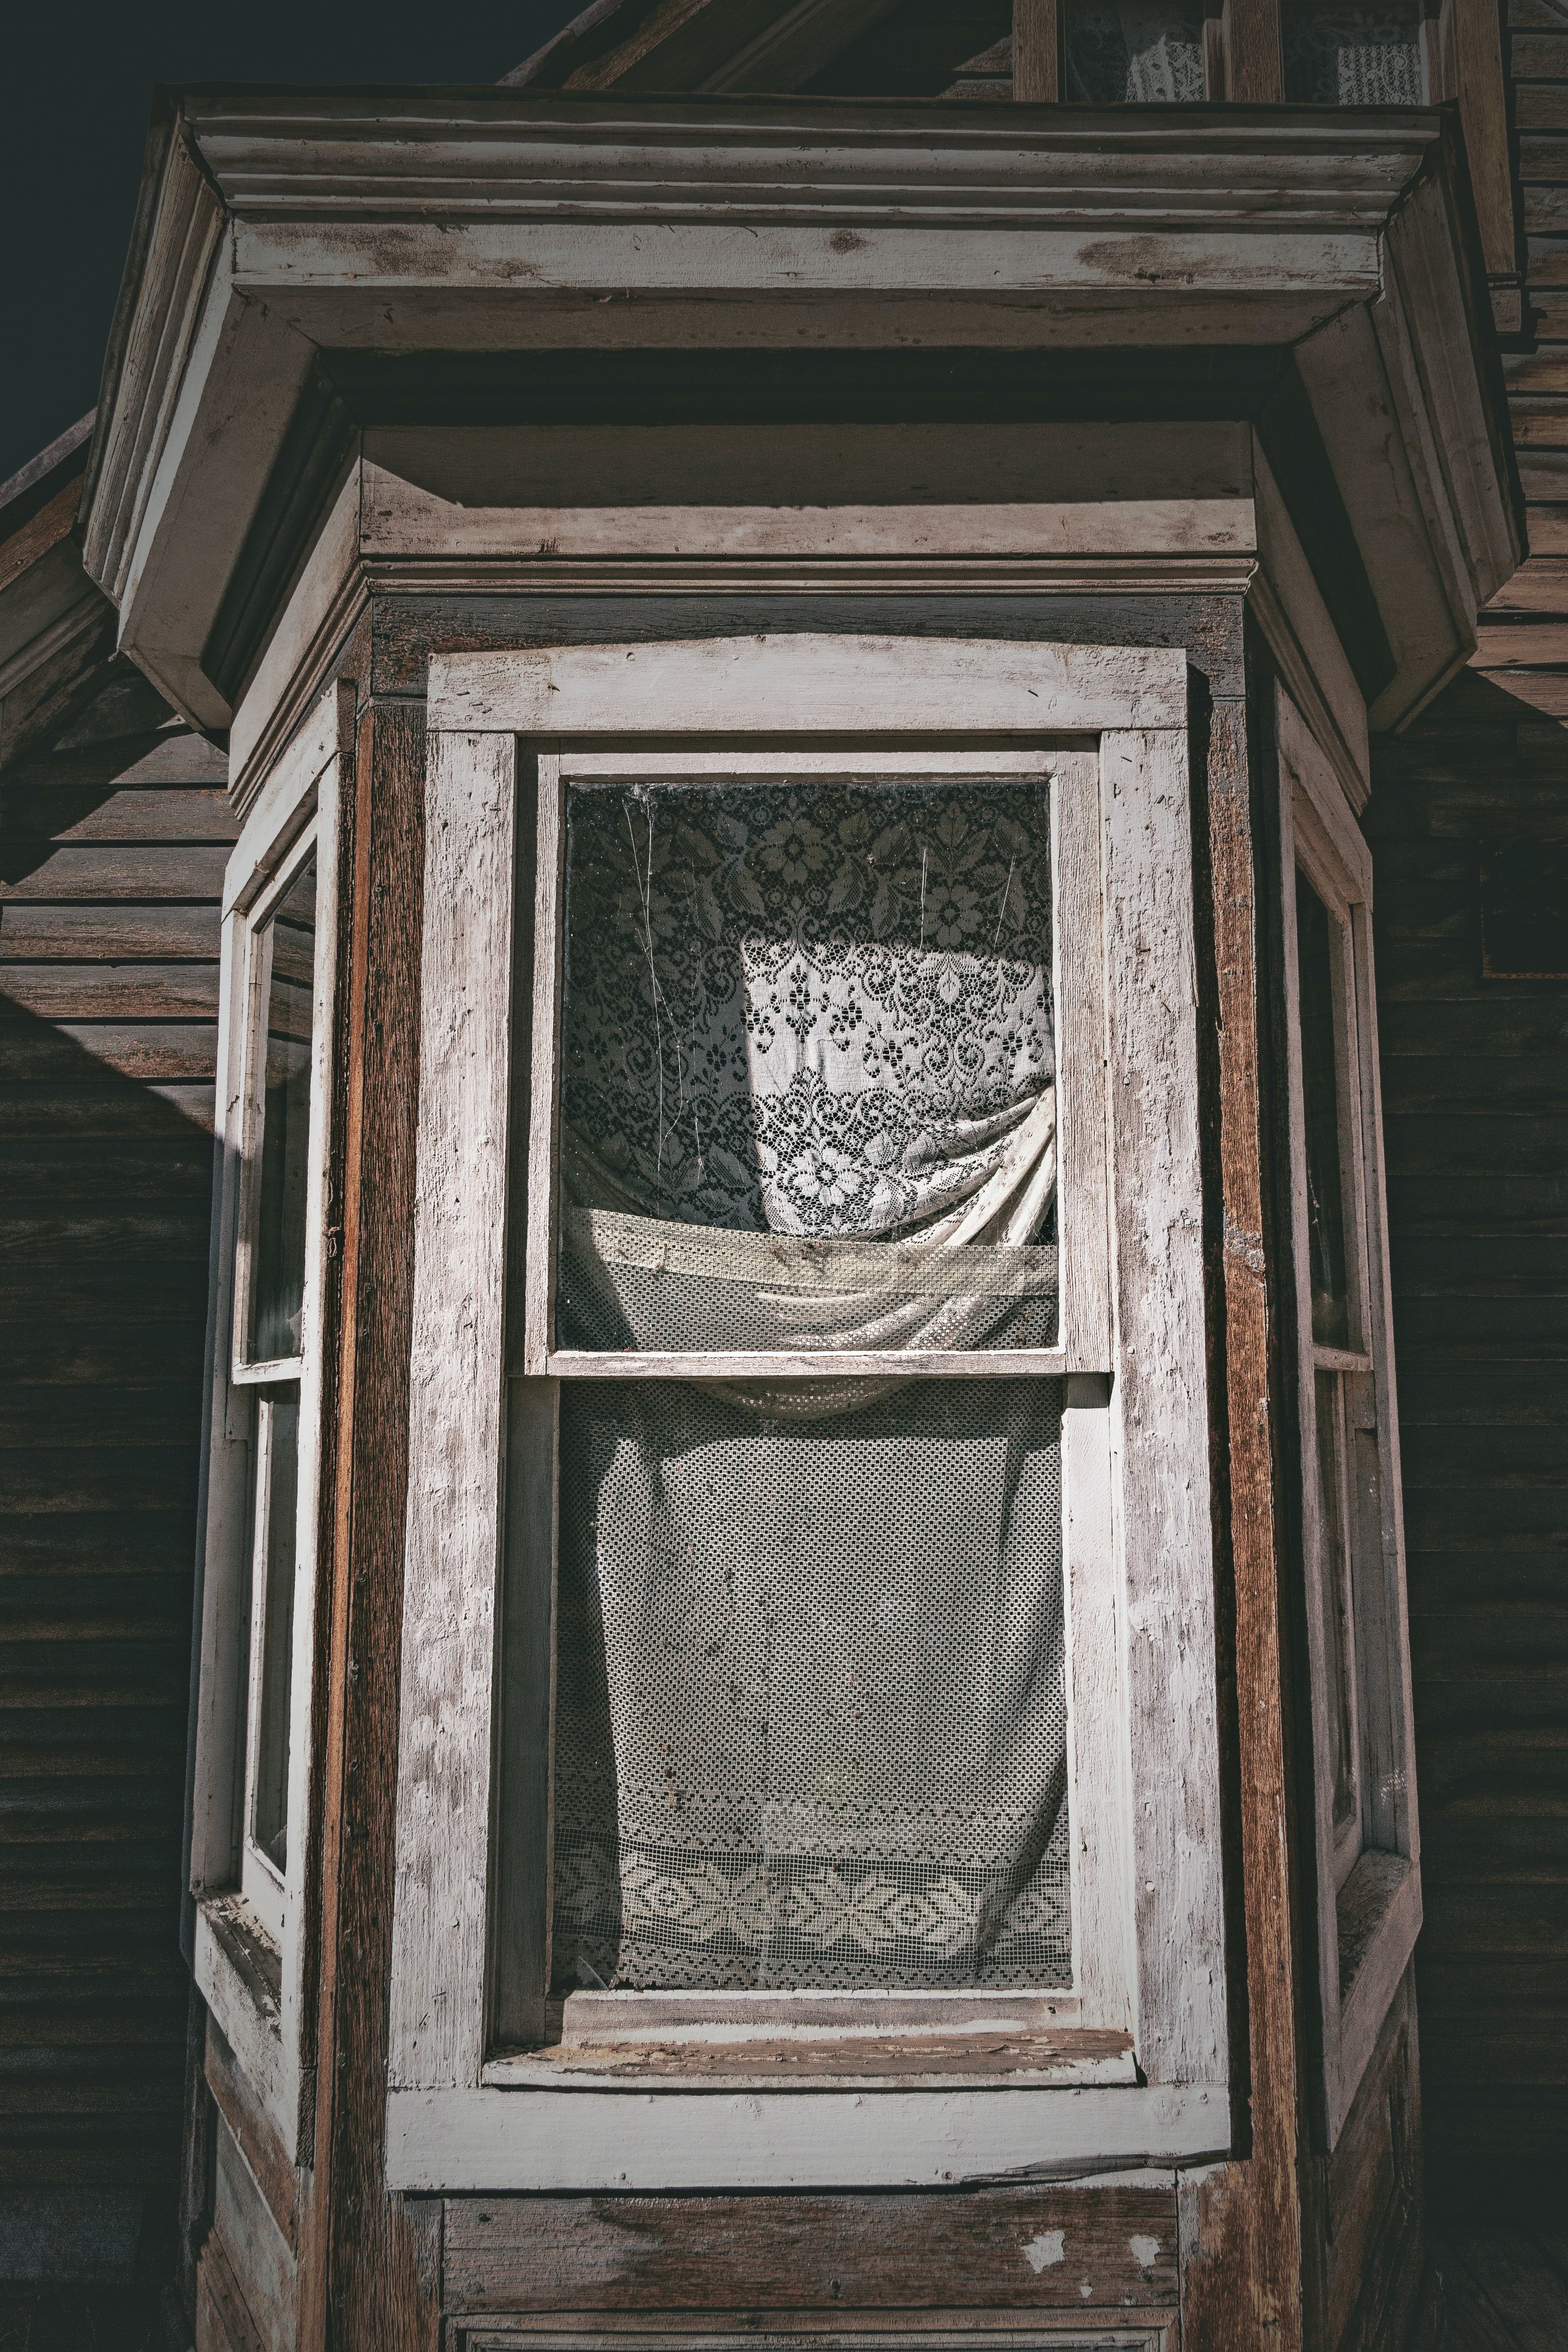 The facade of an old house with cracked framing and window curtains made of used sheets.